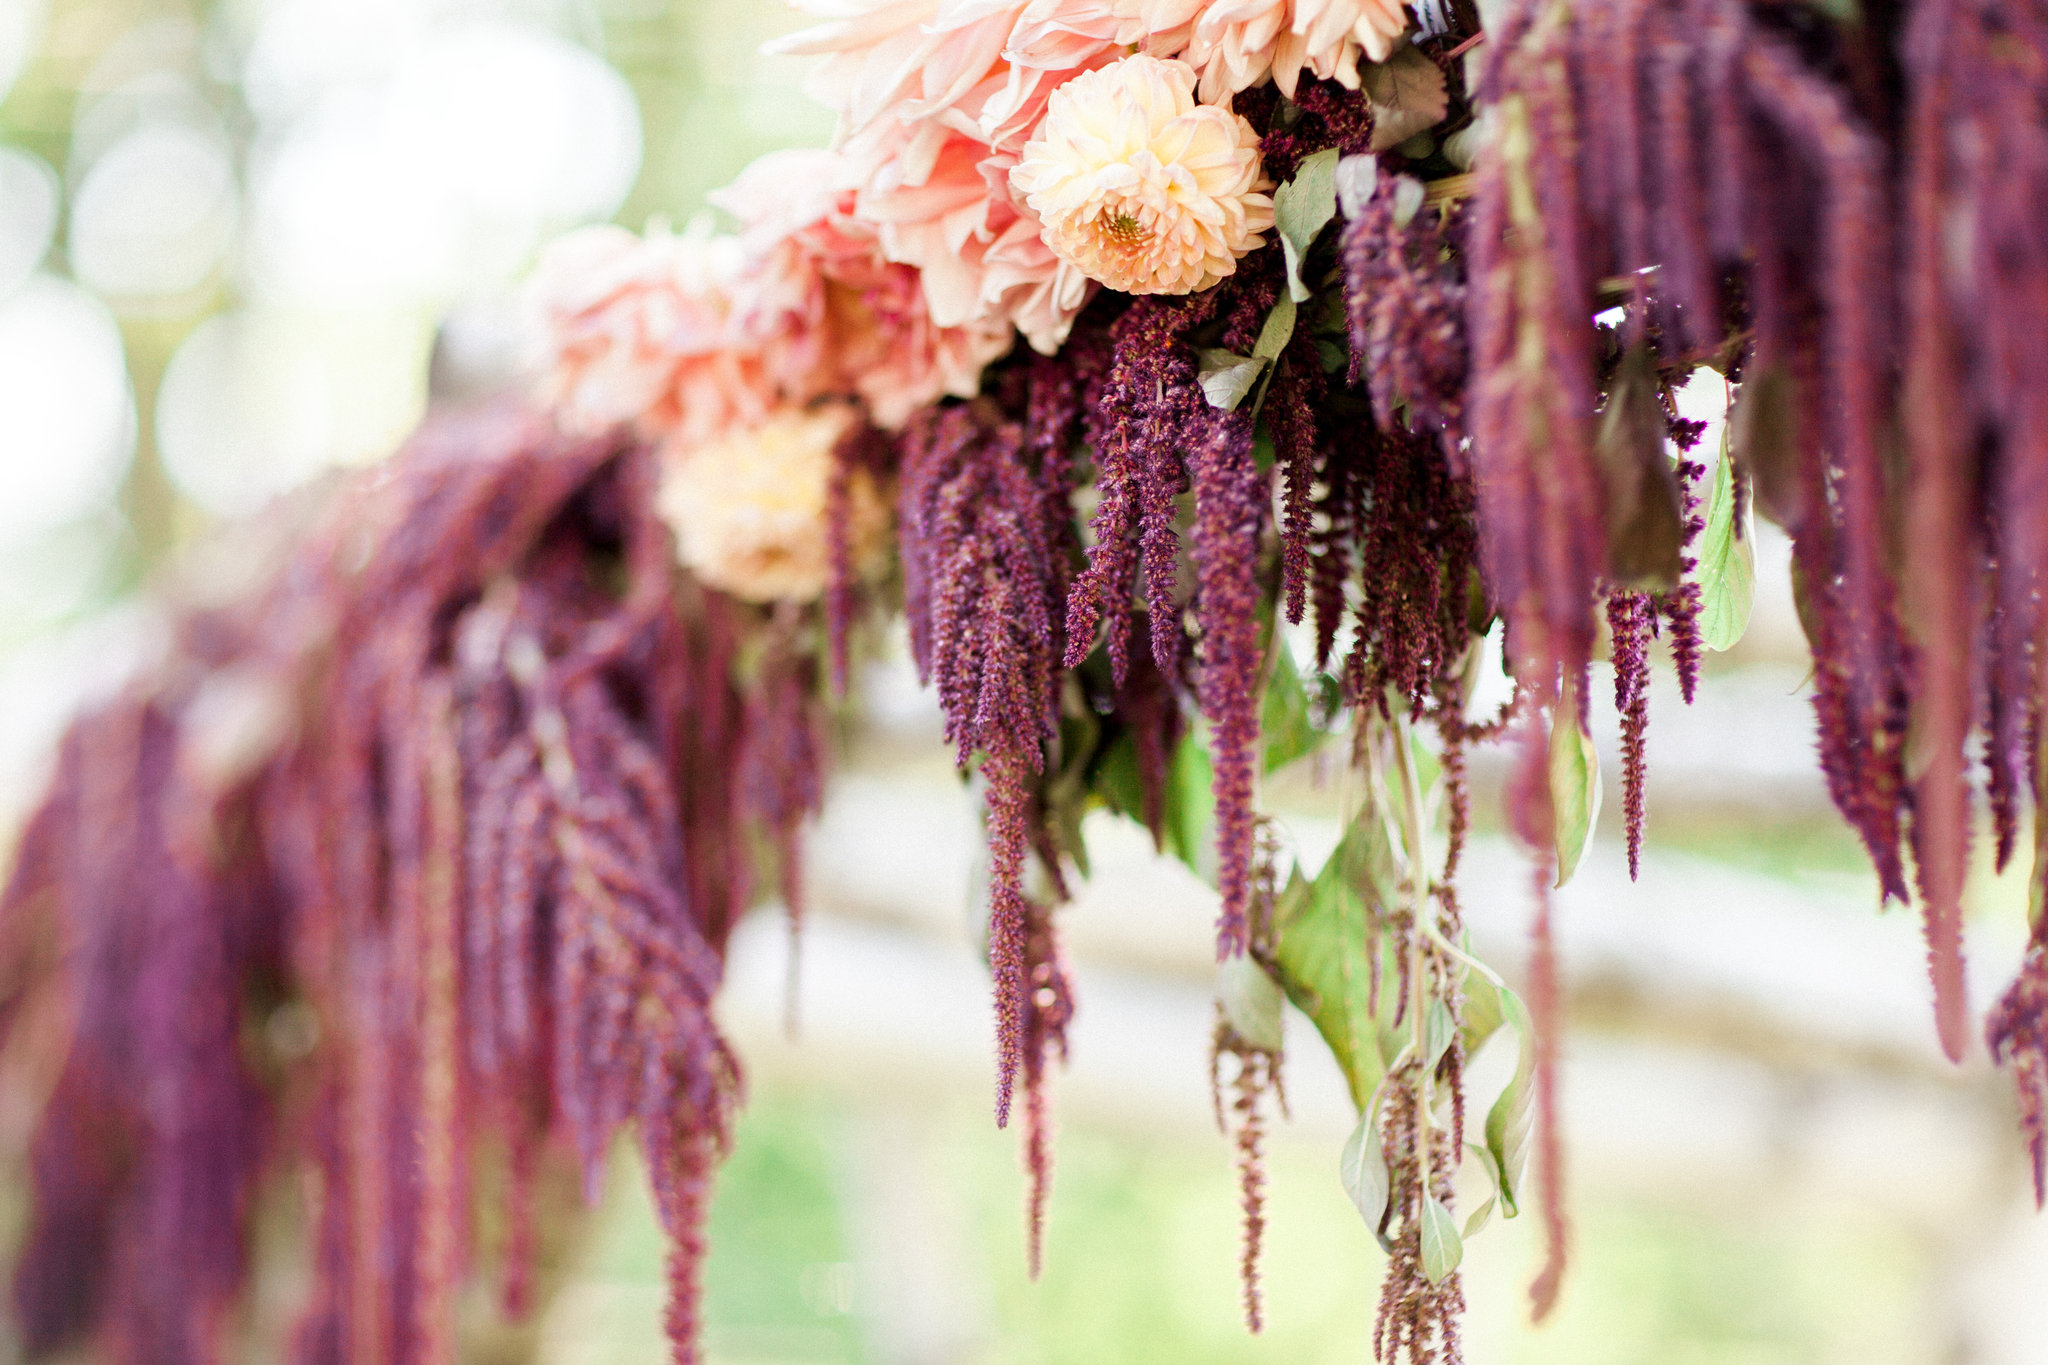 Fall wedding flowers by Nectar & Root | Wedding floral design services in Burlington, Vermont (VT) | Autumn arbor with peach dahlias, marsala hanging amaranth